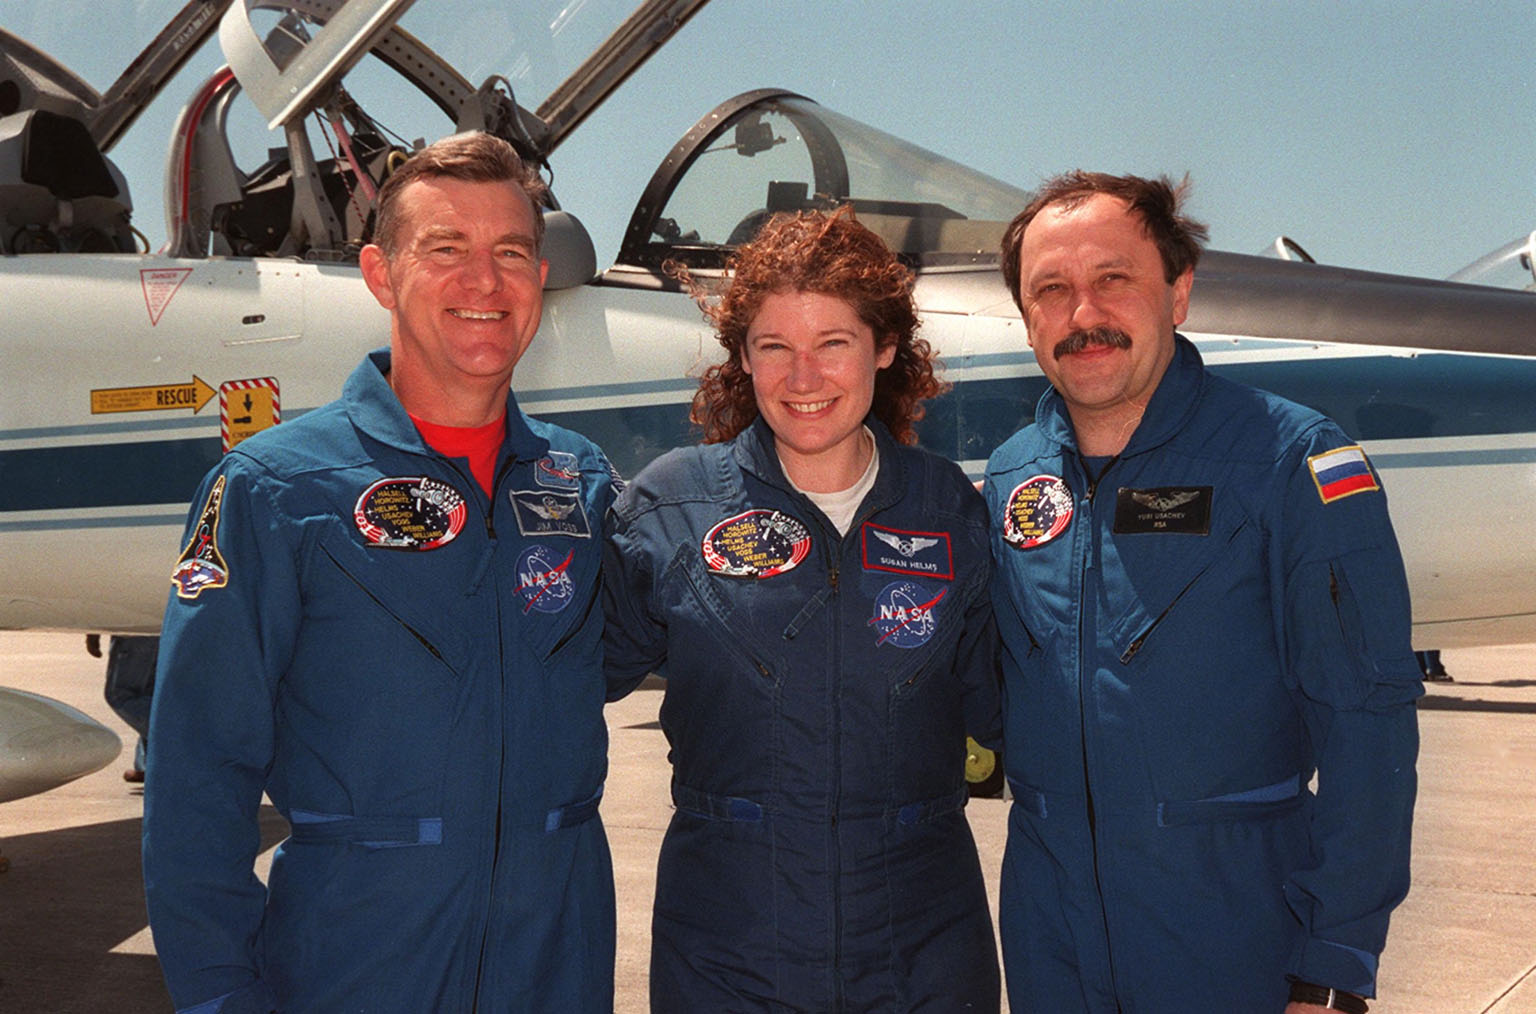 KENNEDY SPACE CENTER, FLA. -- Posing on the tarmac at the Shuttle Landing Facility after their arrival aboard T-38 jets (in the background) are STS-101 Mission Specialists James Voss, Susan Helms and Yury Usachev. They and the rest of the crew are at KSC to take part in Terminal Countdown Demonstration Test (TCDT) activities that include emergency egress training and a dress rehearsal for launch. The other crew members are Commander James Halsell, Pilot Scott Horowitz, and Mission Specialists Mary Ellen Weber and Jeffrey Williams. During their mission to the International Space Station, the STS-101 crew will be delivering logistics and supplies, plus preparing the Station for the arrival of the Zvezda Service Module, expected to be launched by Russia in July 2000. Also, the crew will conduct one space walk to perform maintenance on the Space Station. This will be the third assembly flight for the Space Station. STS-101 is scheduled to launch April 24 at 4:15 p.m. from Launch Pad 39A